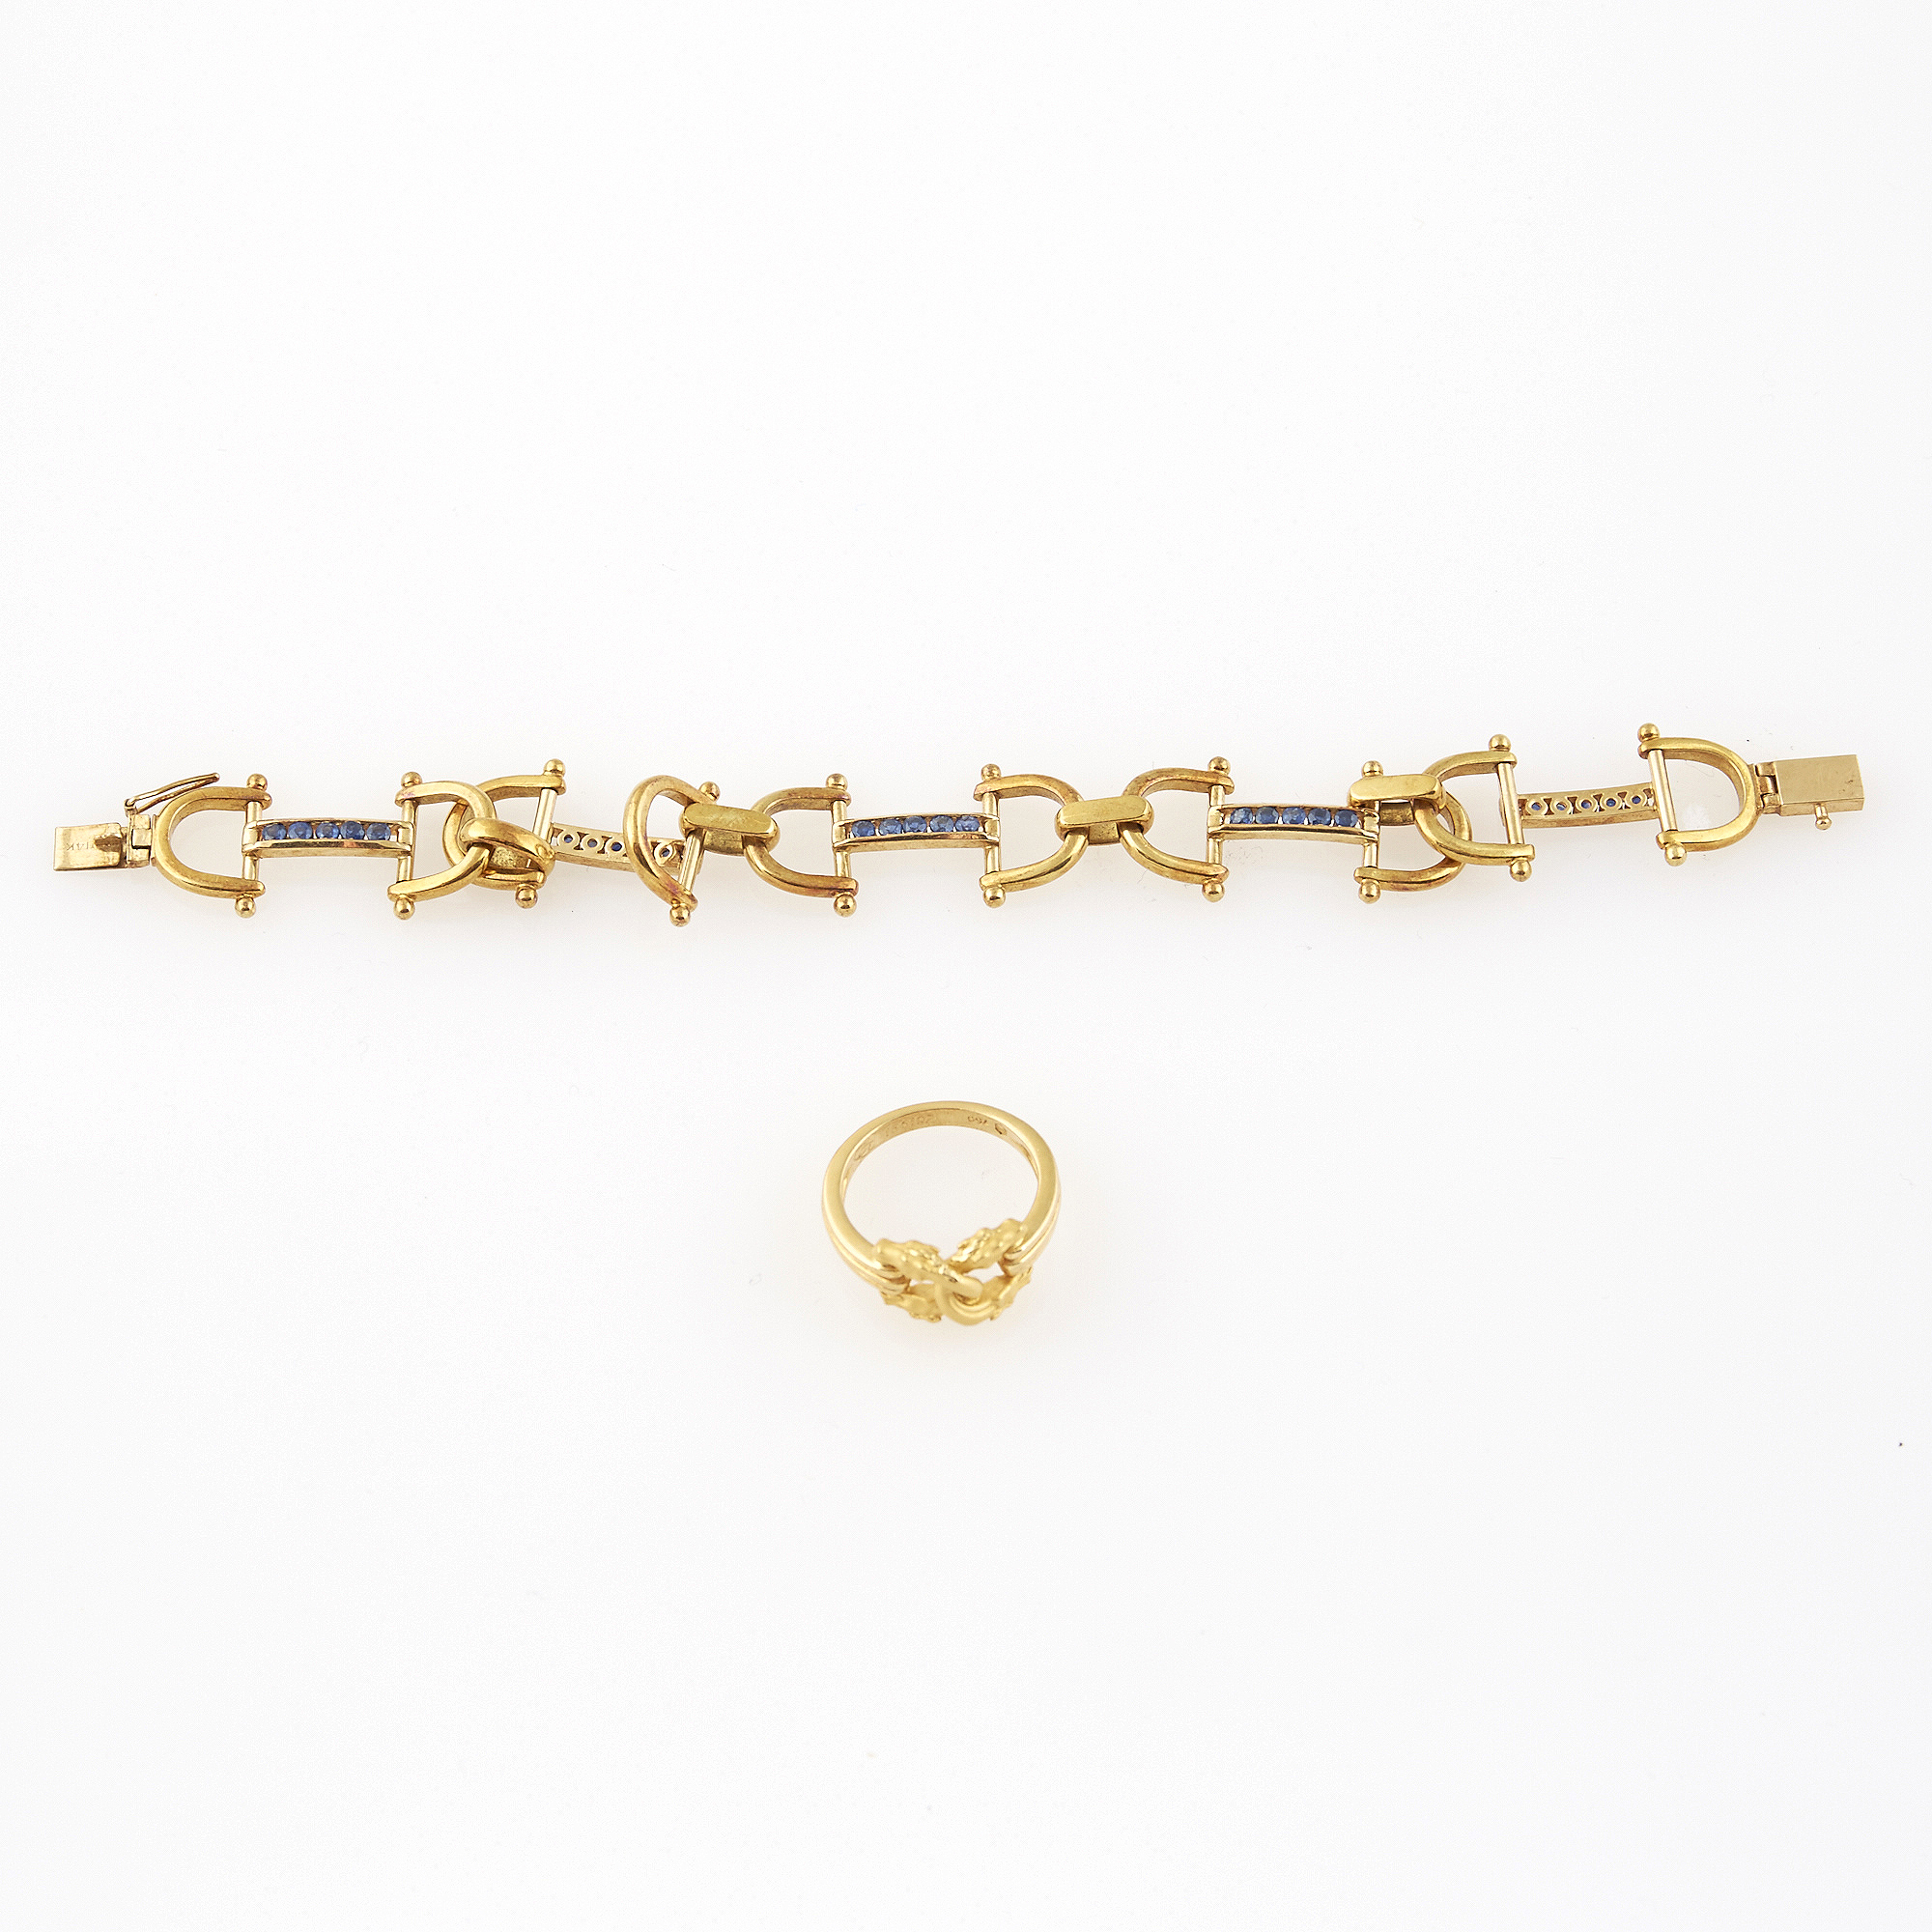 Lot image - Gold and Stone Flexible Bracelet and Ring, 18K 17 dwt. all